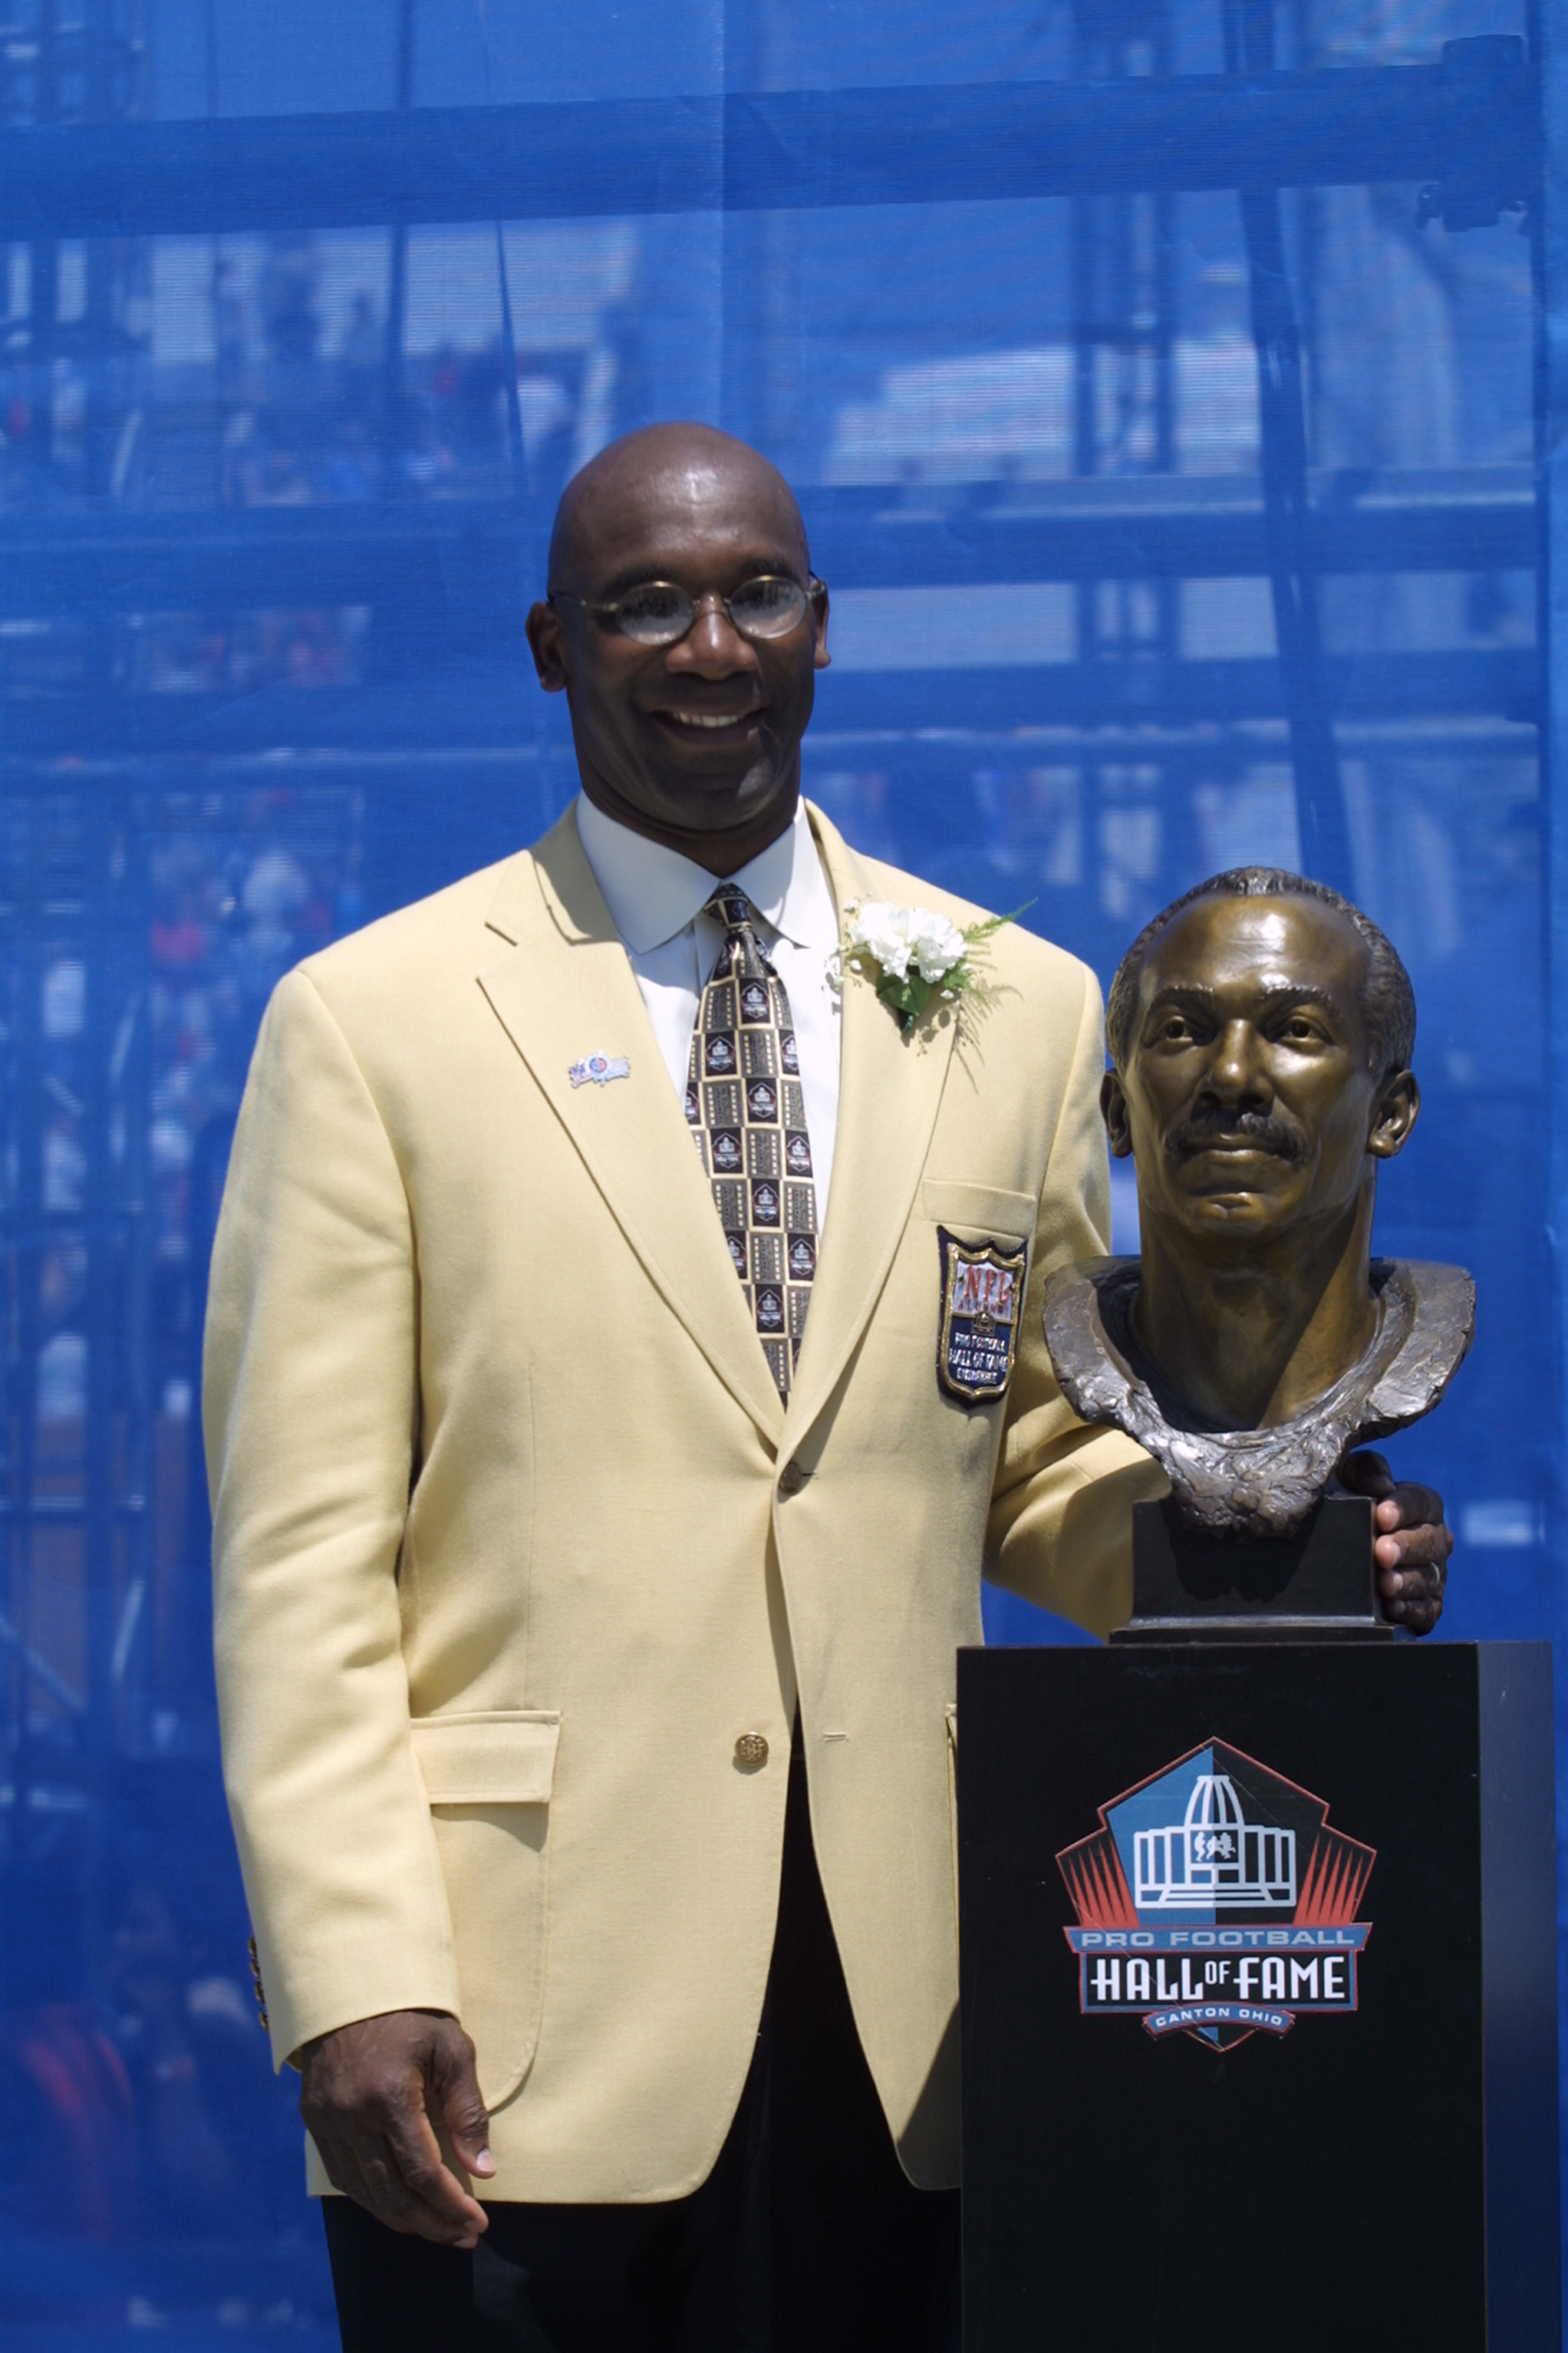 CANTON, OHIO - AUGUST 3:  John Stallworth John Stallworth stands next to his bust after his induction into the National Football League Hall of Fame on August 3, 2002 at Fawcett Stadium in Canton, Ohio.  Stallworth played wide receiver for the Pittsburgh